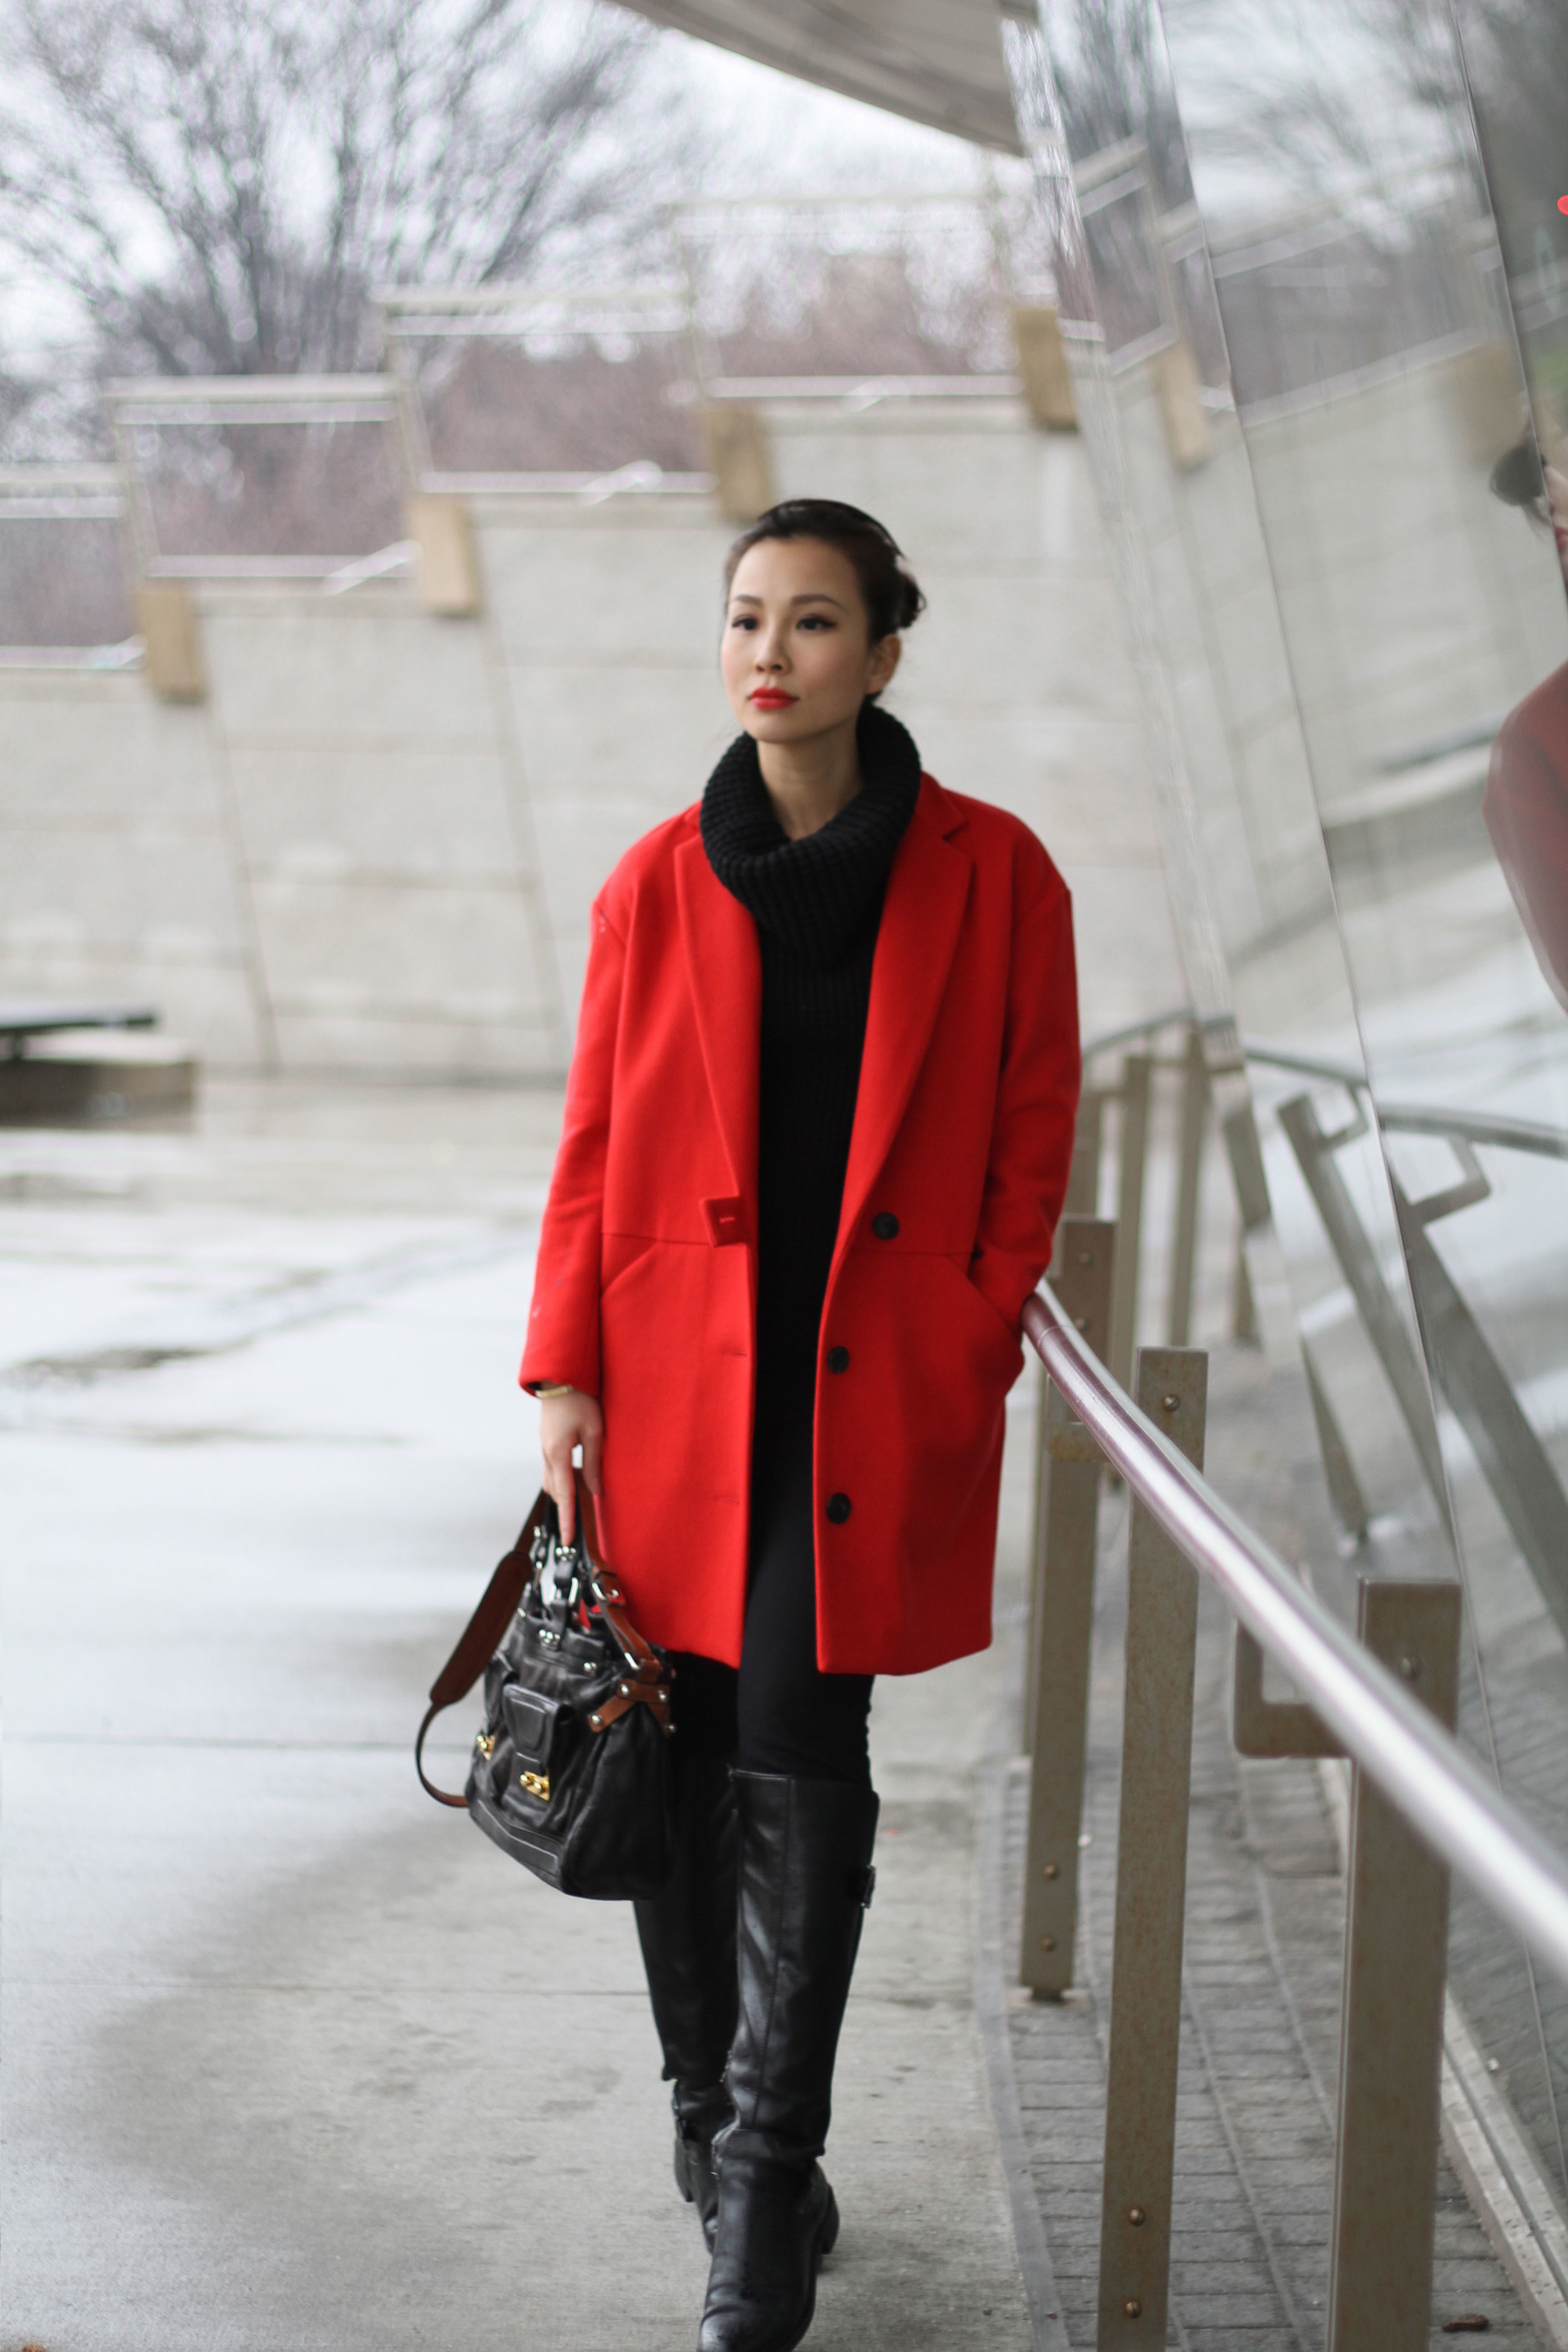 chic winter outfit.jpg